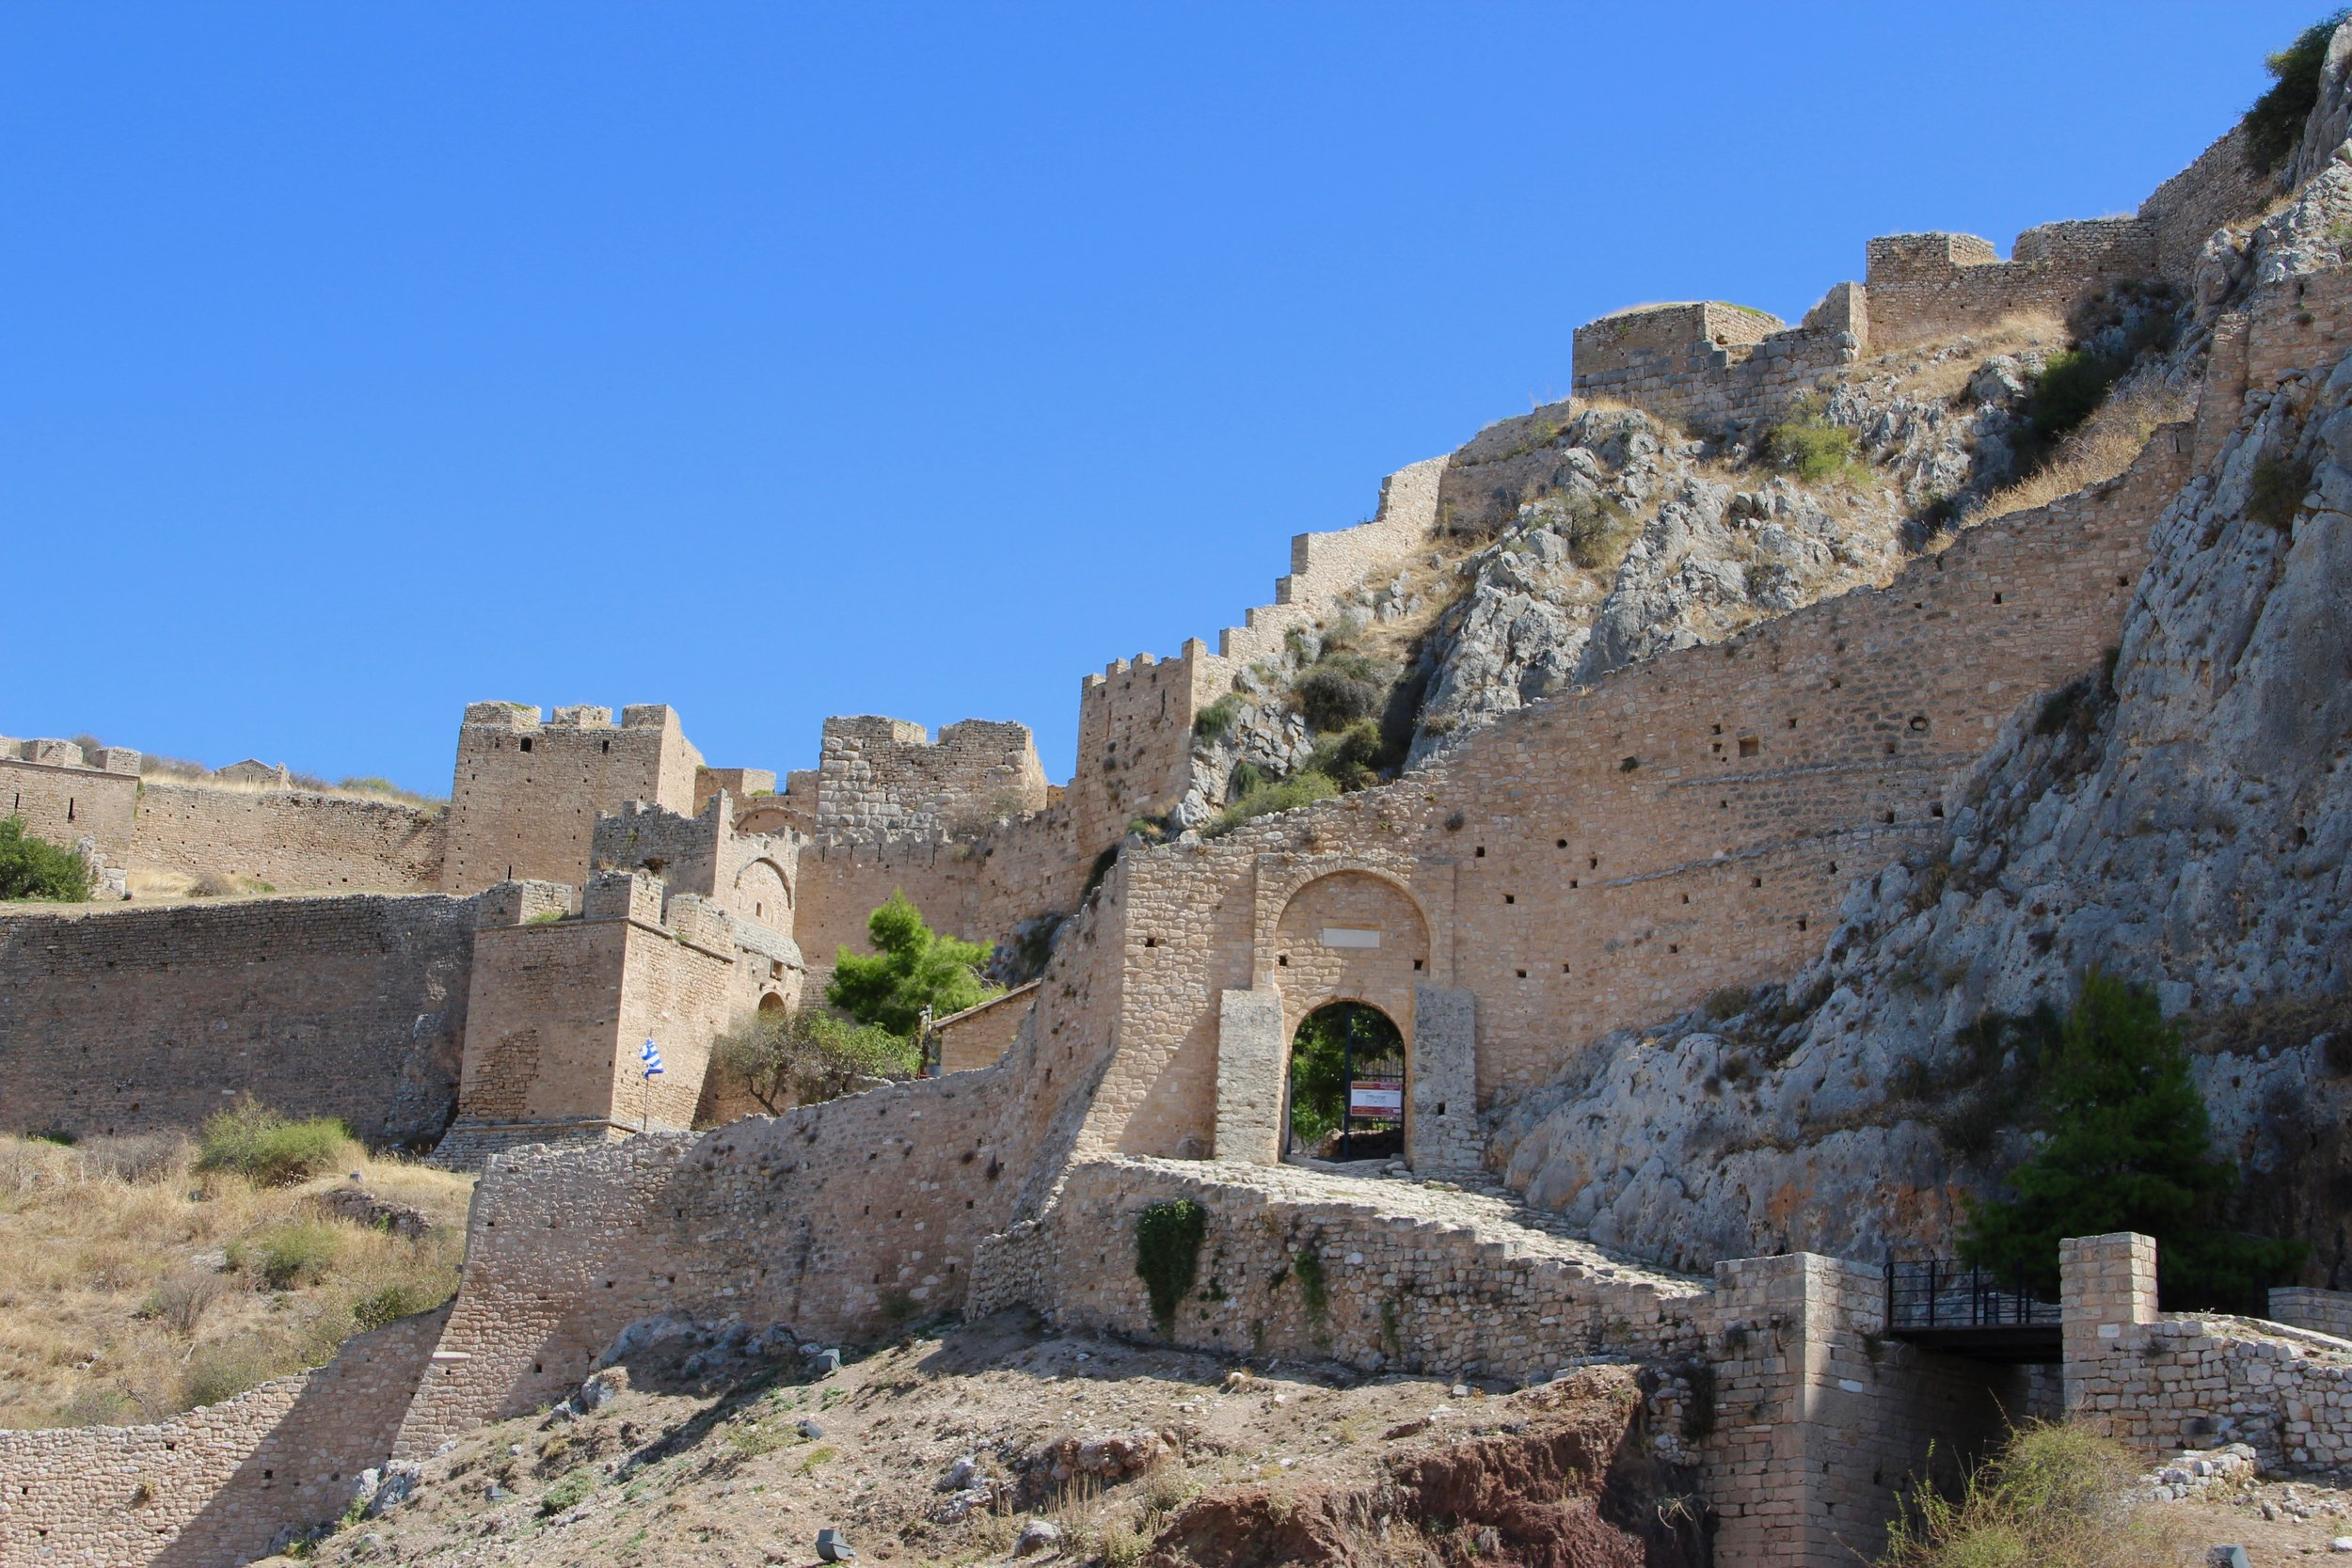 Acrocorinth stretches the mind with its size and history